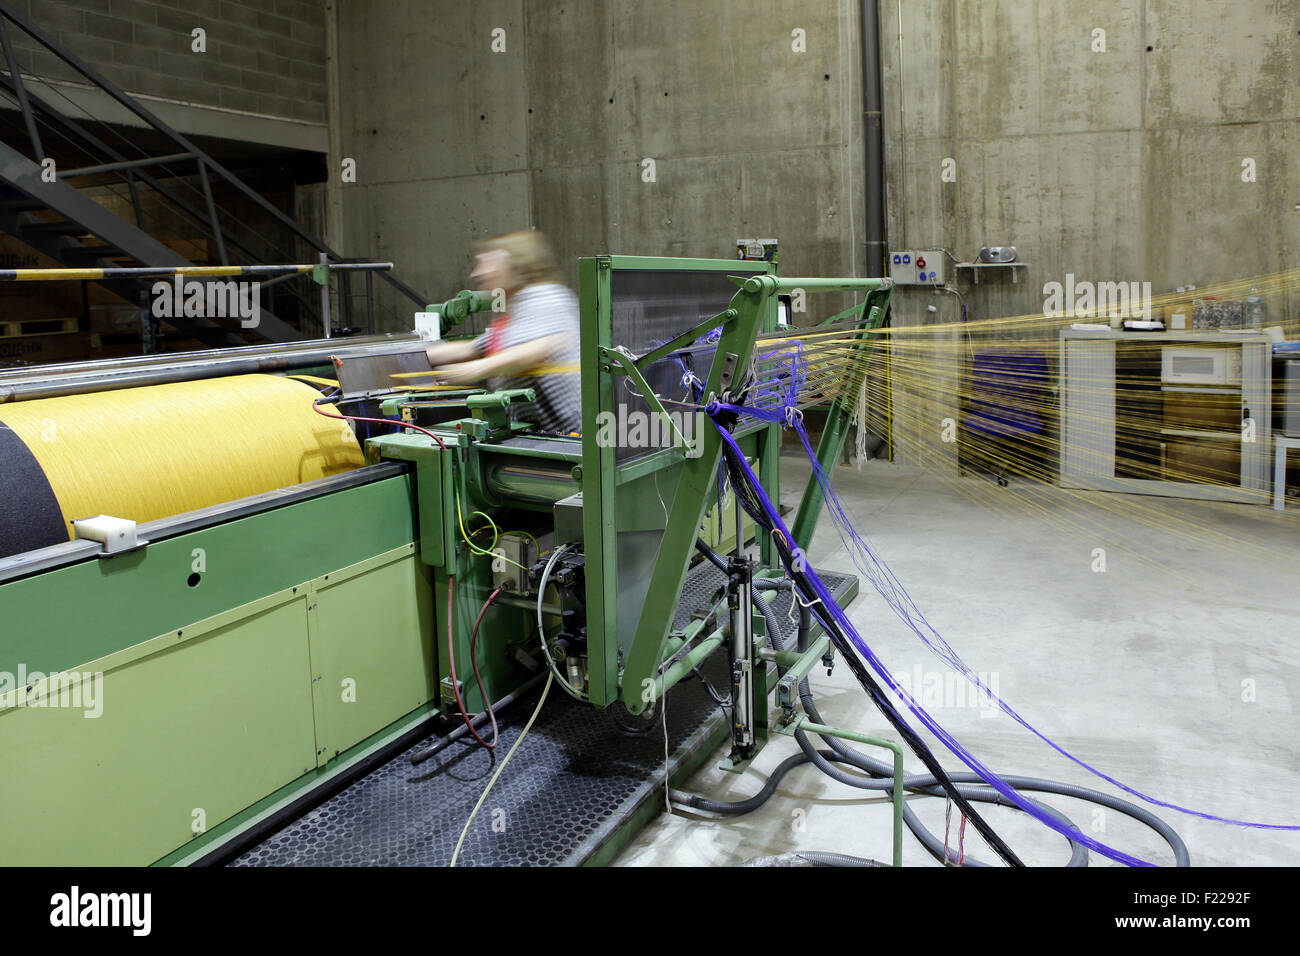 Inside a textile factory. Spin machine. - Stock Image